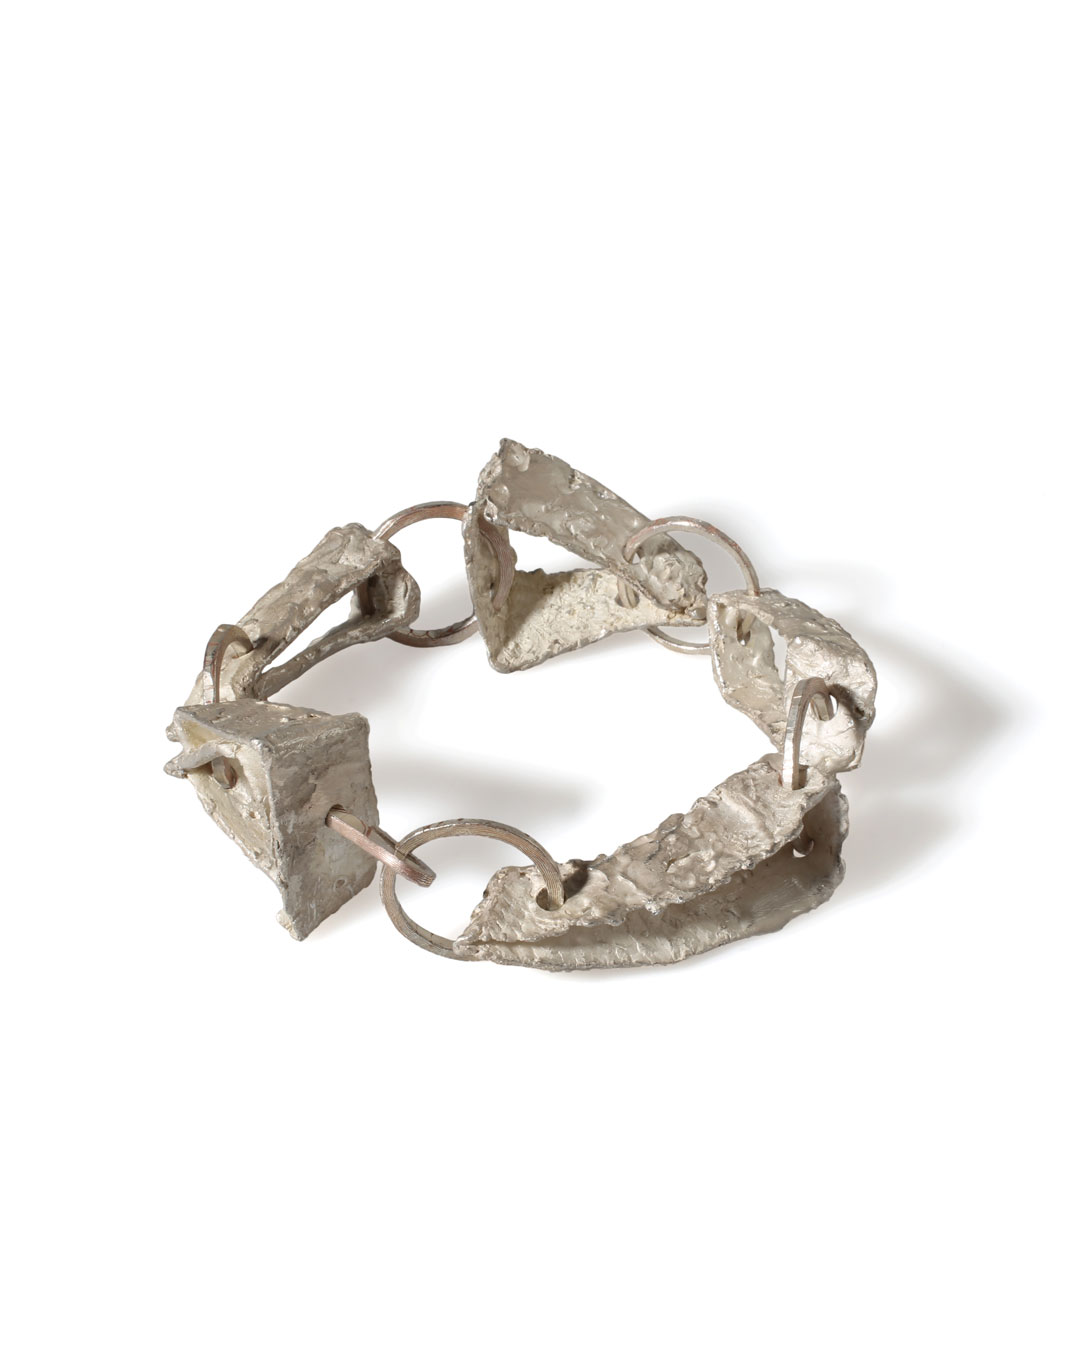 Juliane Brandes, untitled, 2013, bracelet; silver, copper, 23 x 30 x 15 mm, €2200